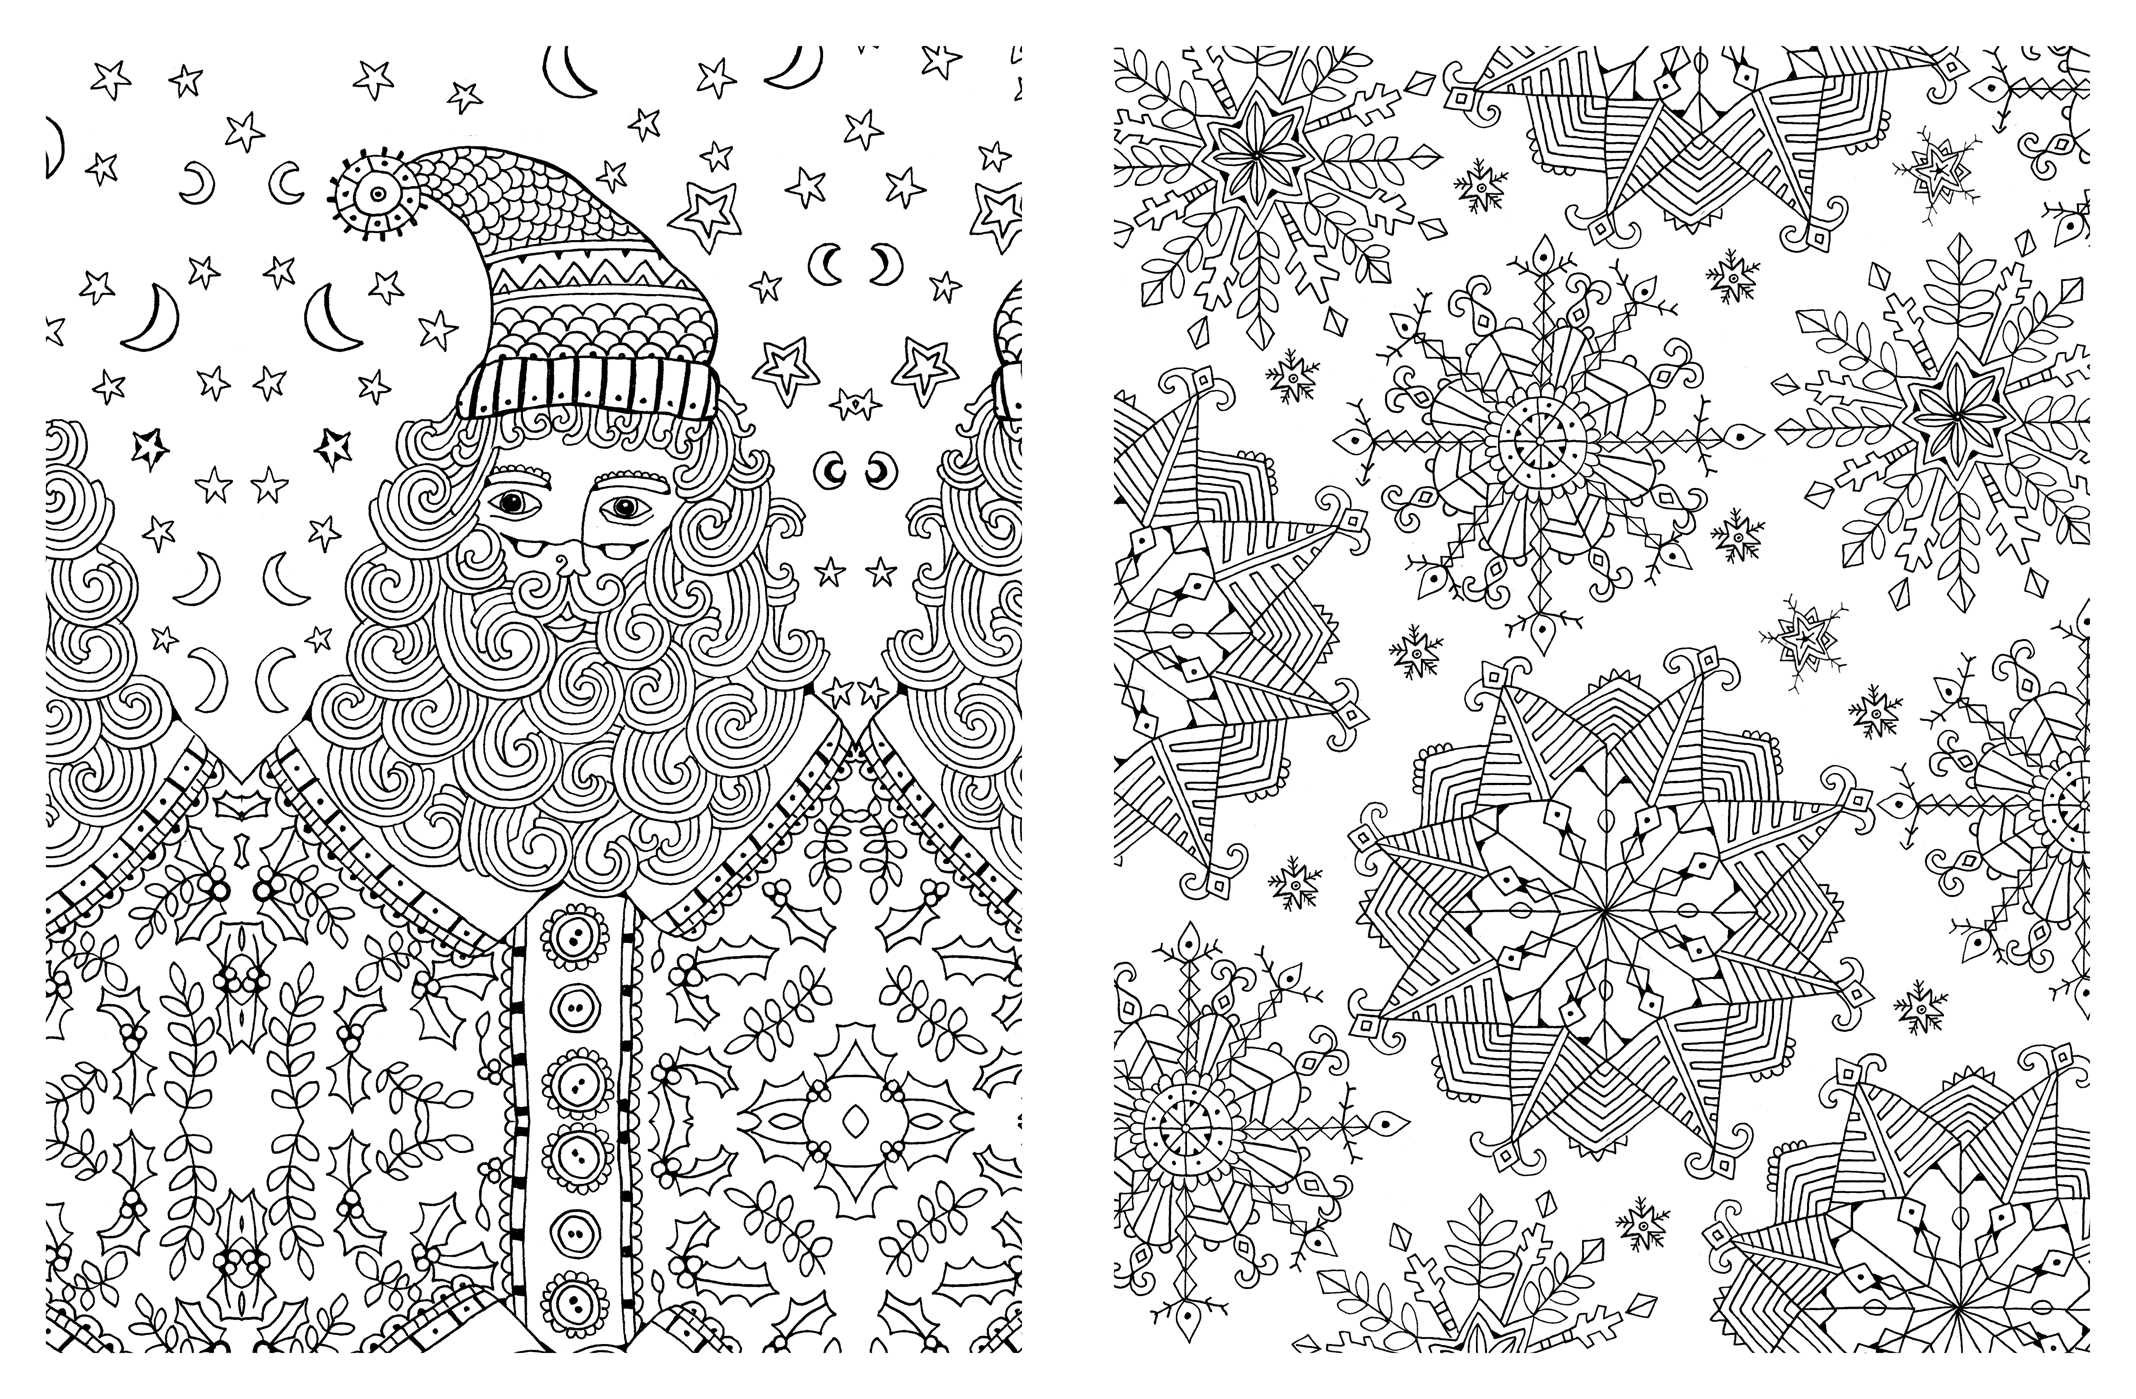 Xmas Coloring Book With Amazon Com Posh Adult Christmas Designs For Fun